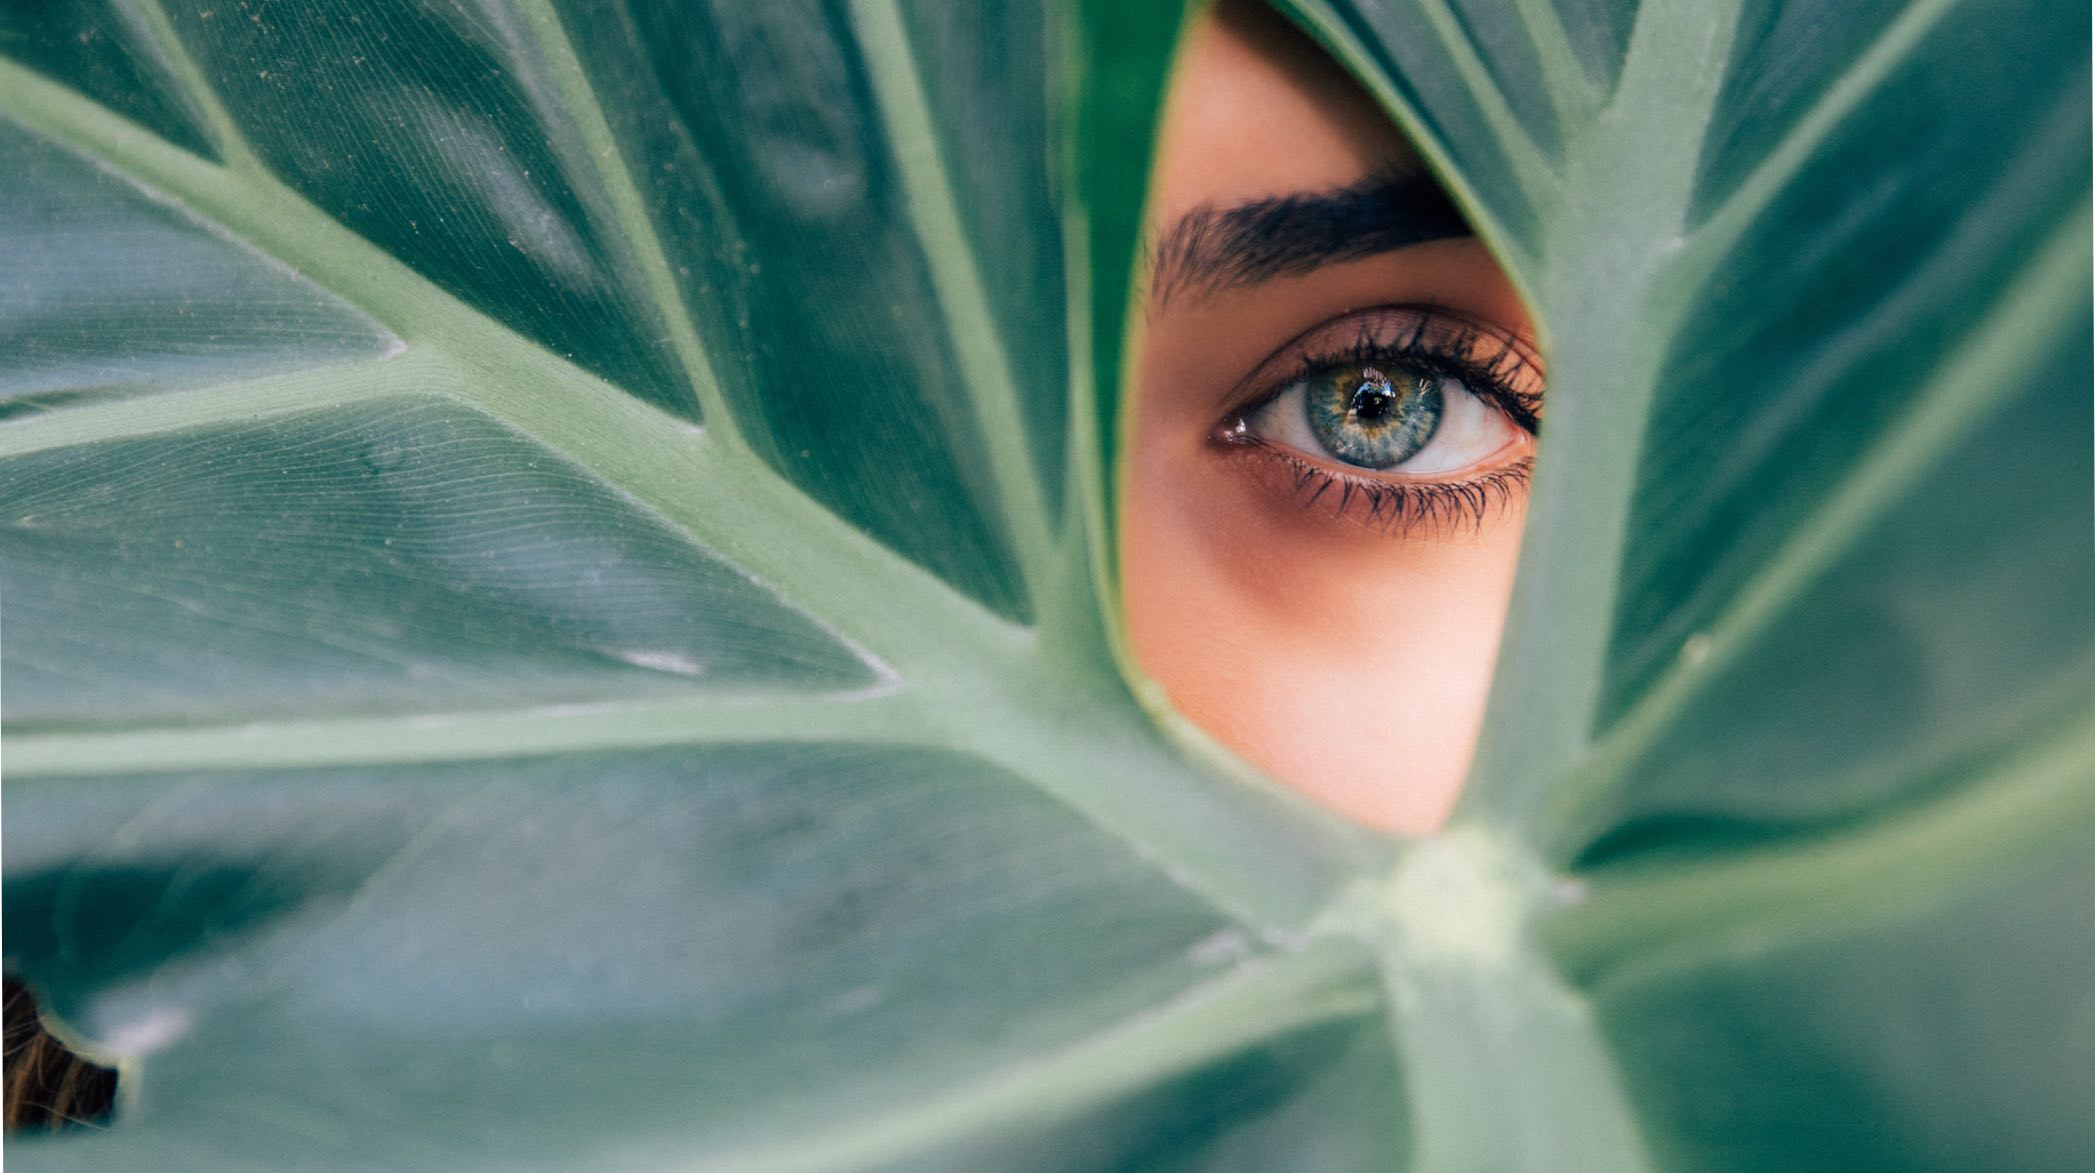 How to reduce puffiness and dark circles at home according to a skin expert